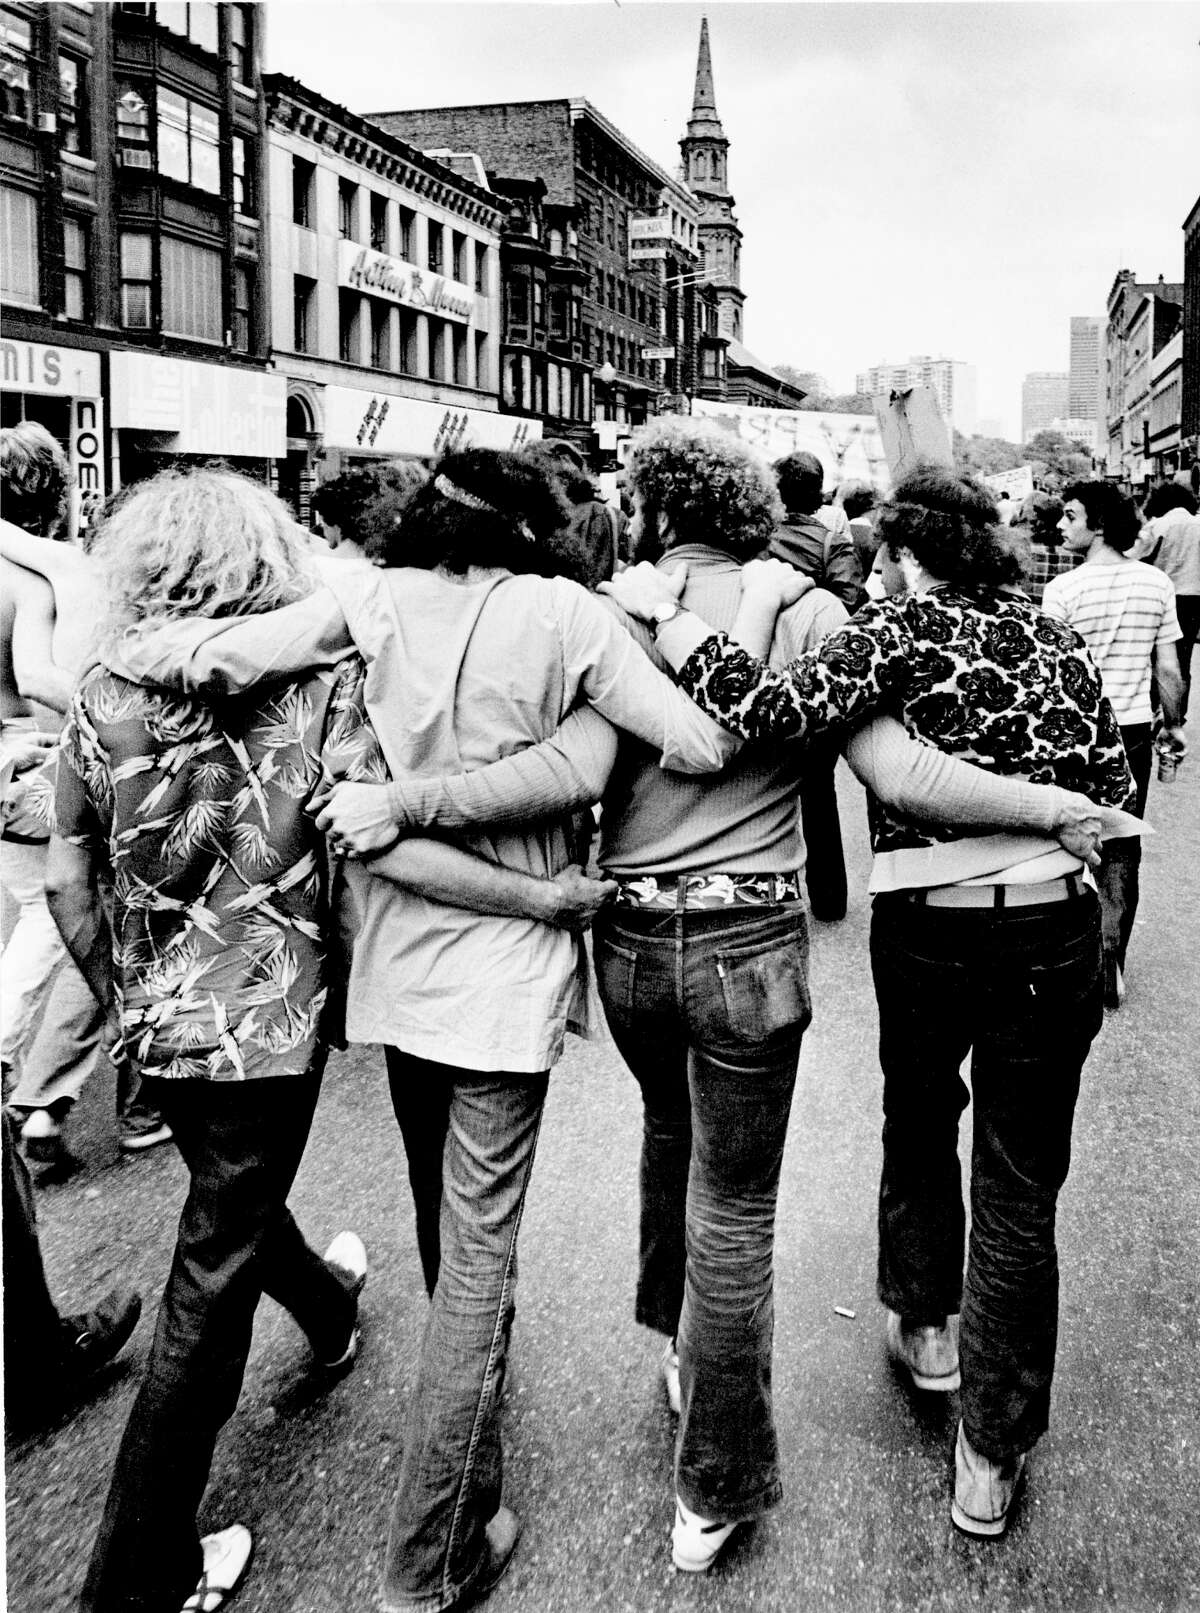 1972: Camaraderie in the streets during a gay pride parade in Boston, Mass.